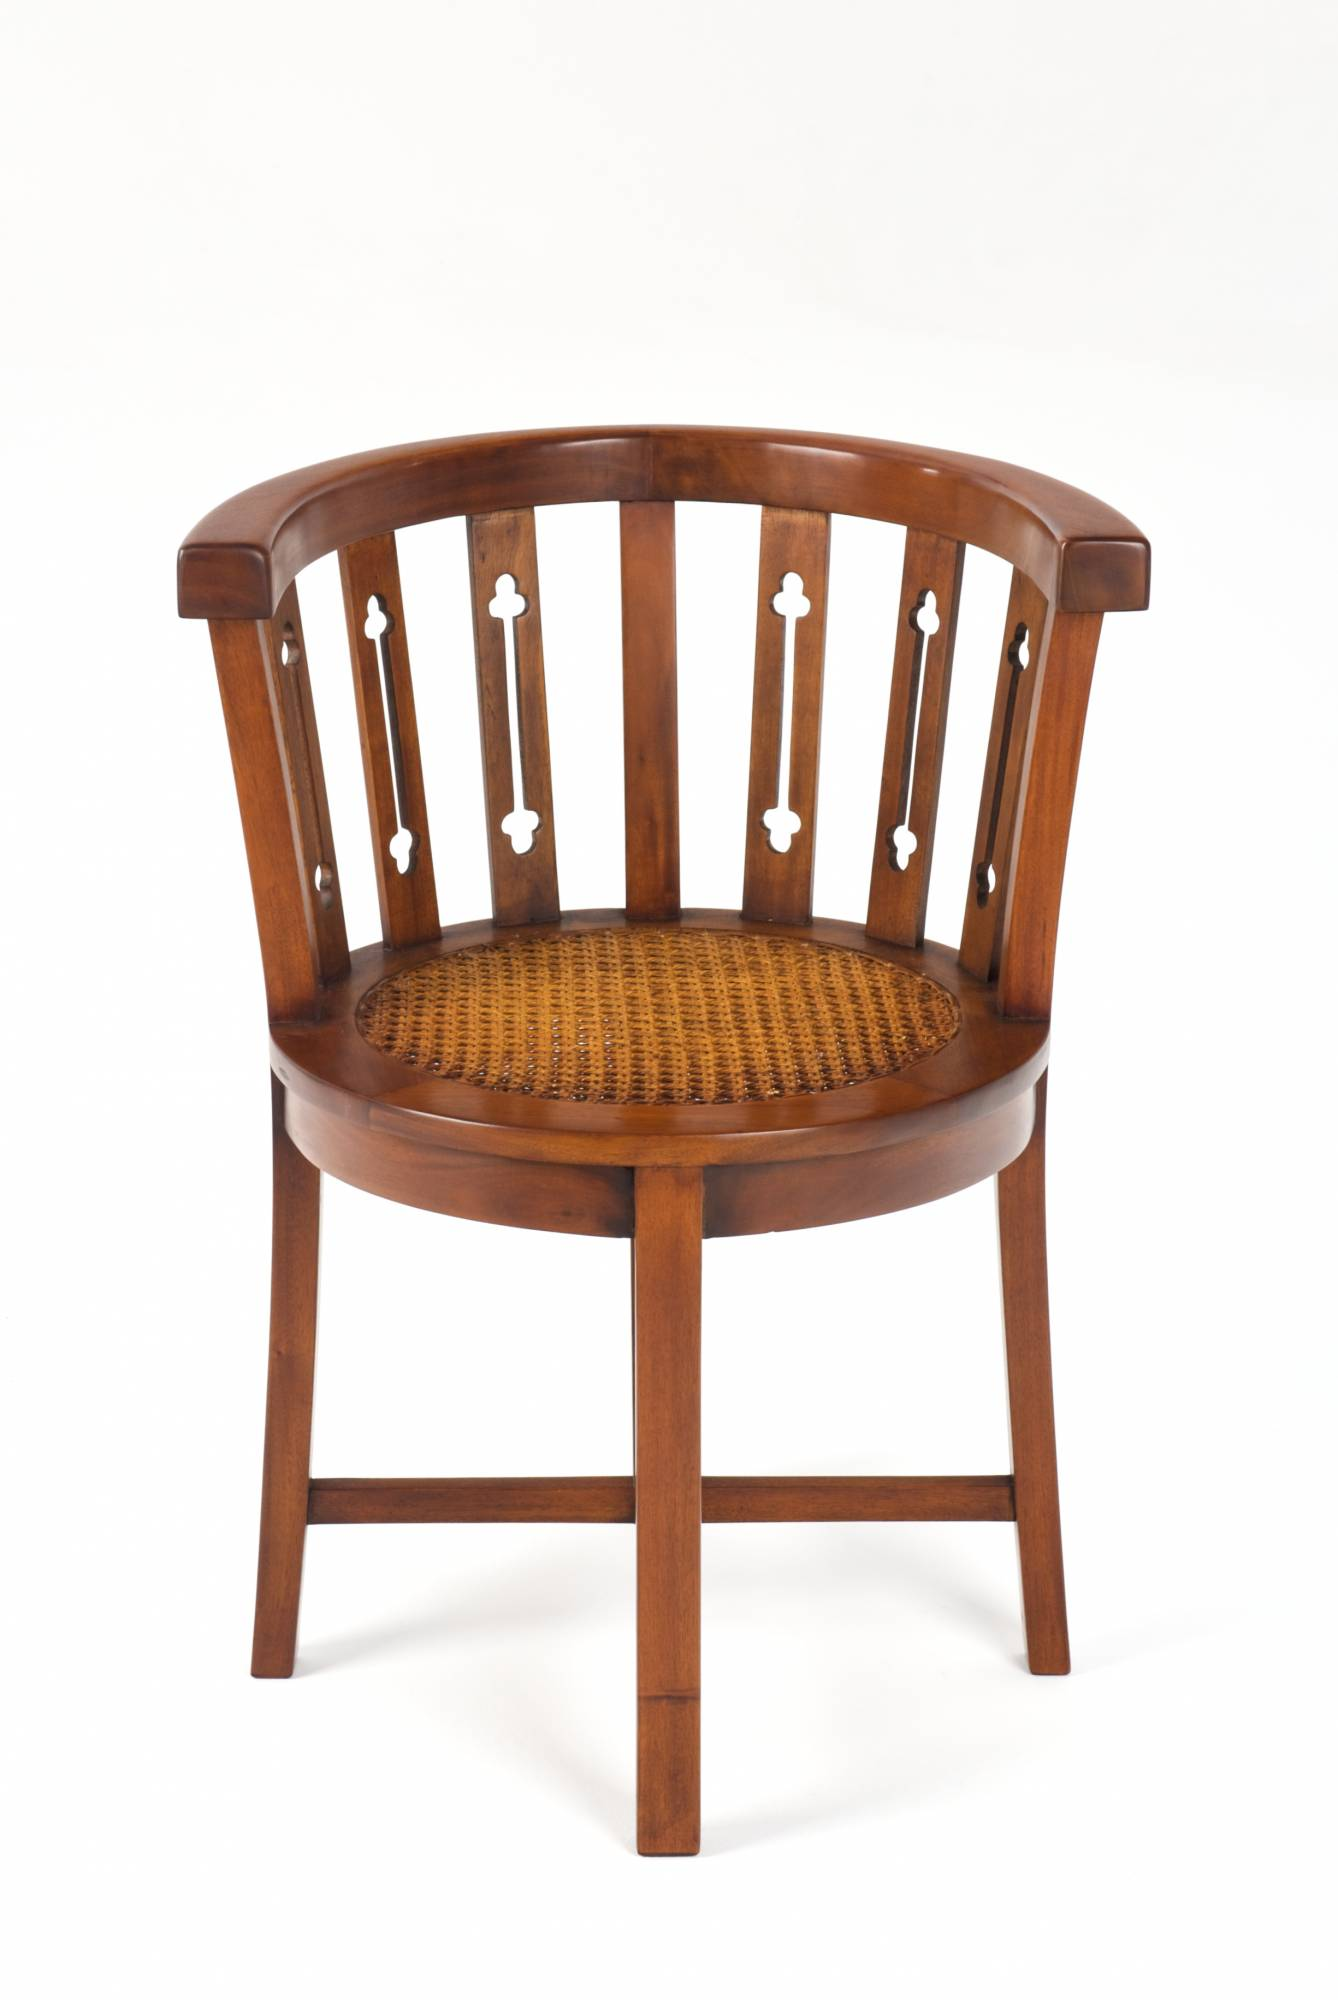 large tub chair plastic with oak legs rattan traditional furniture hills